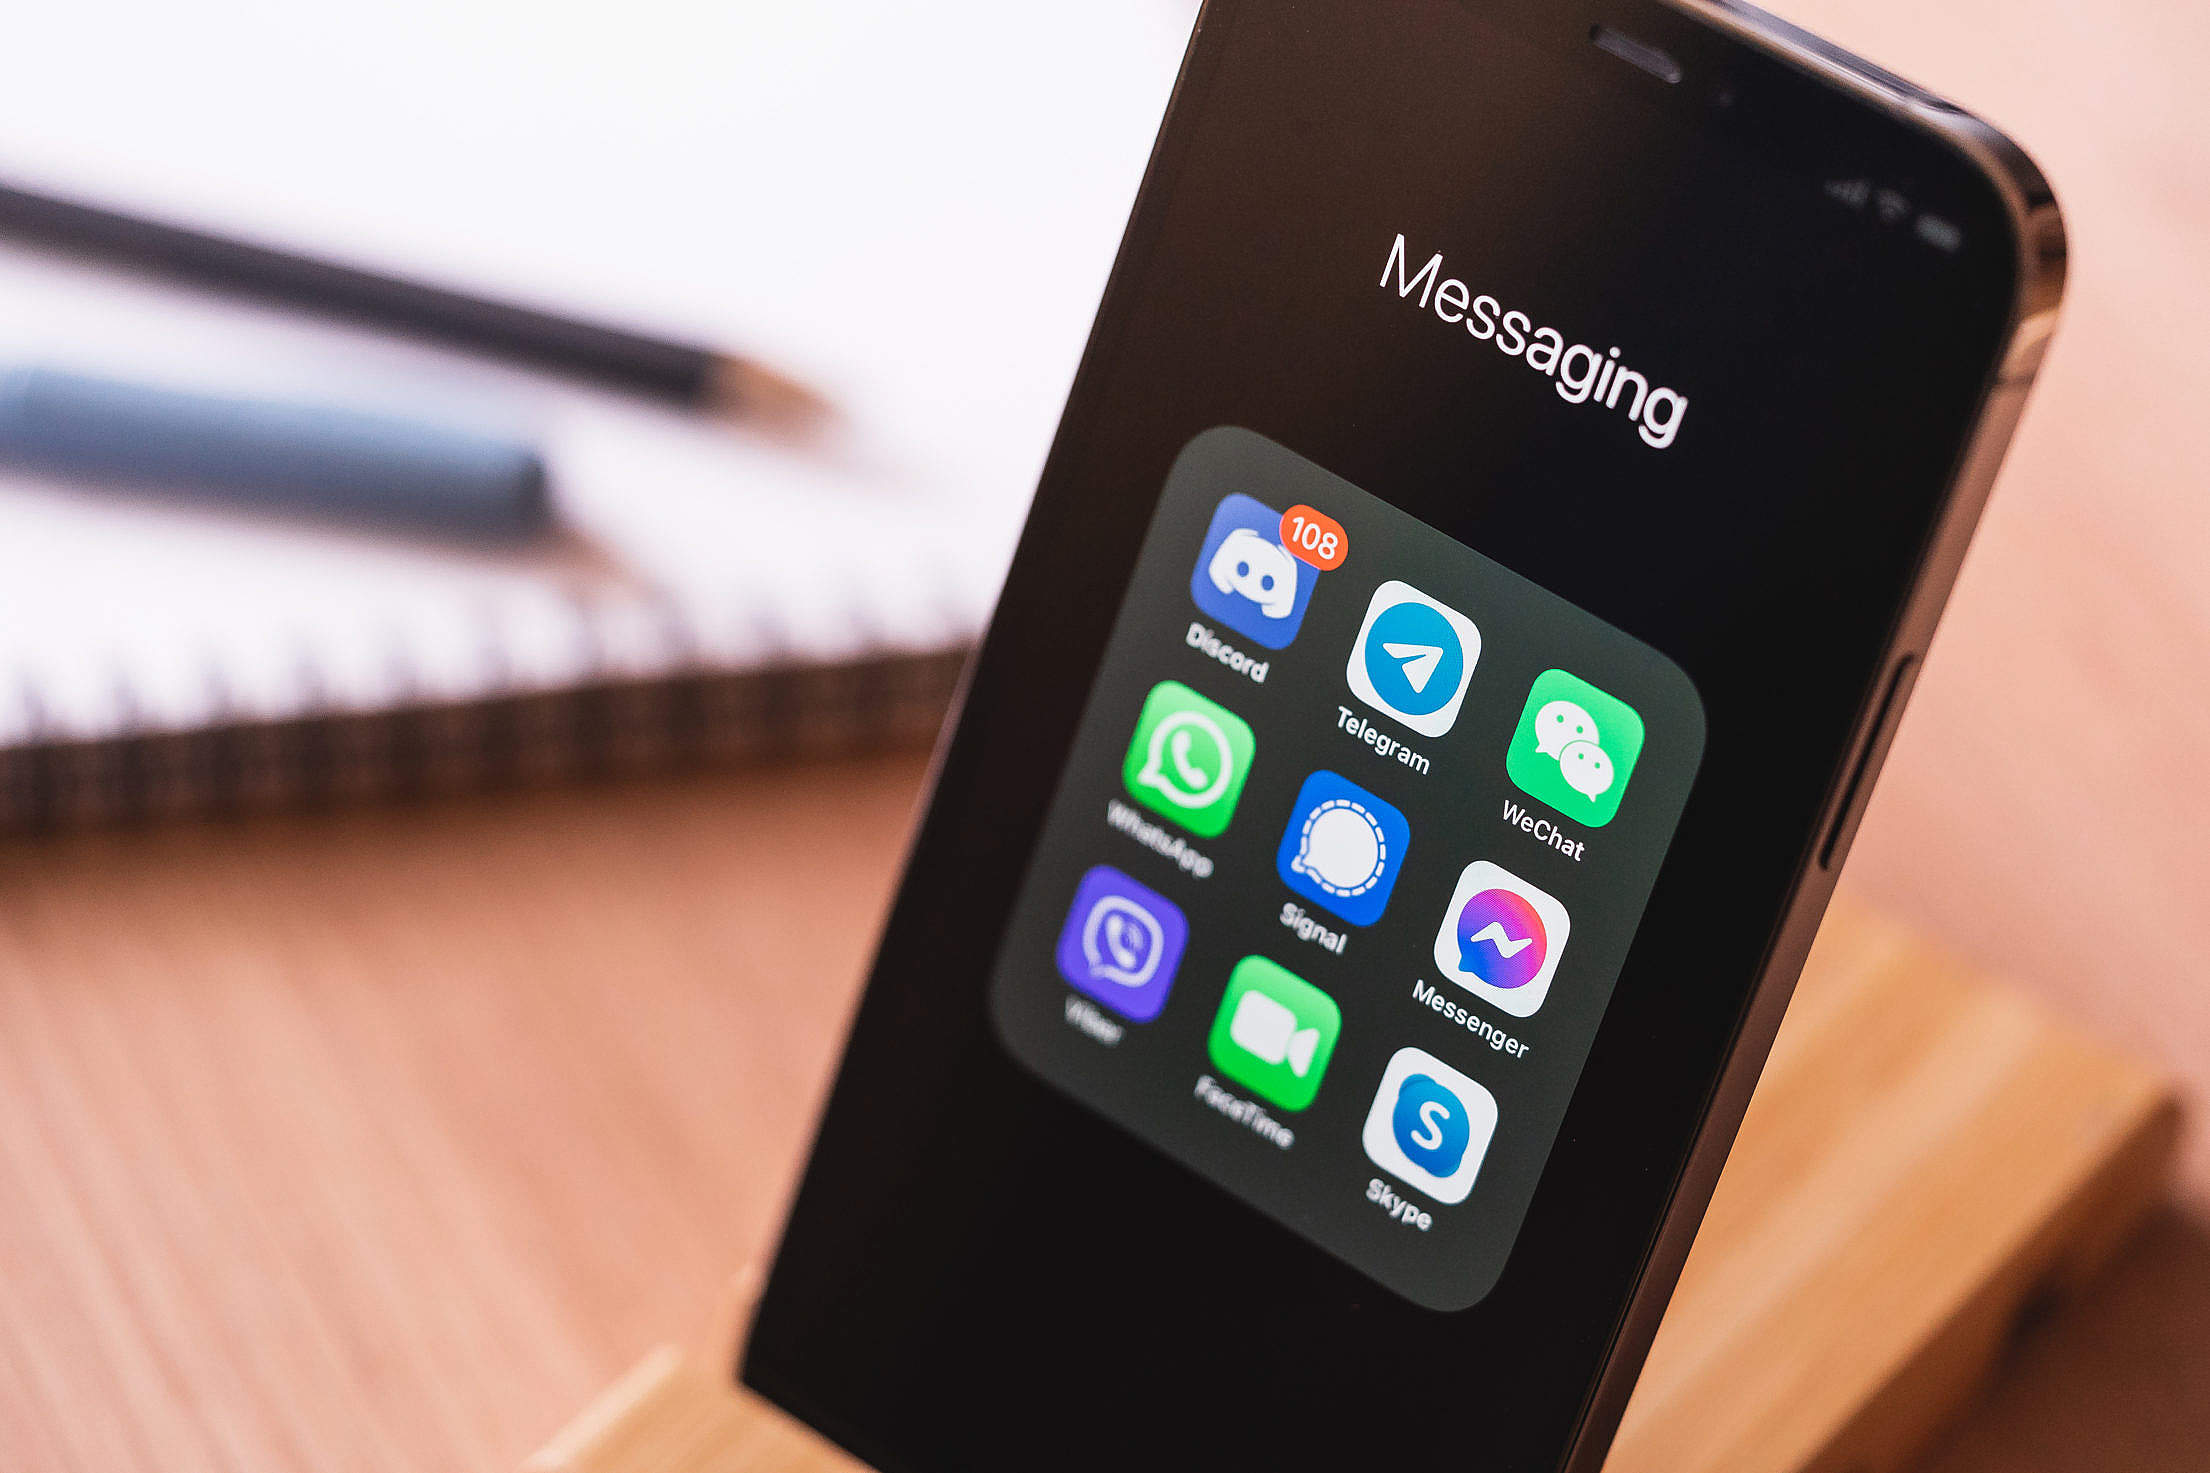 Messaging Application Free Stock Photo